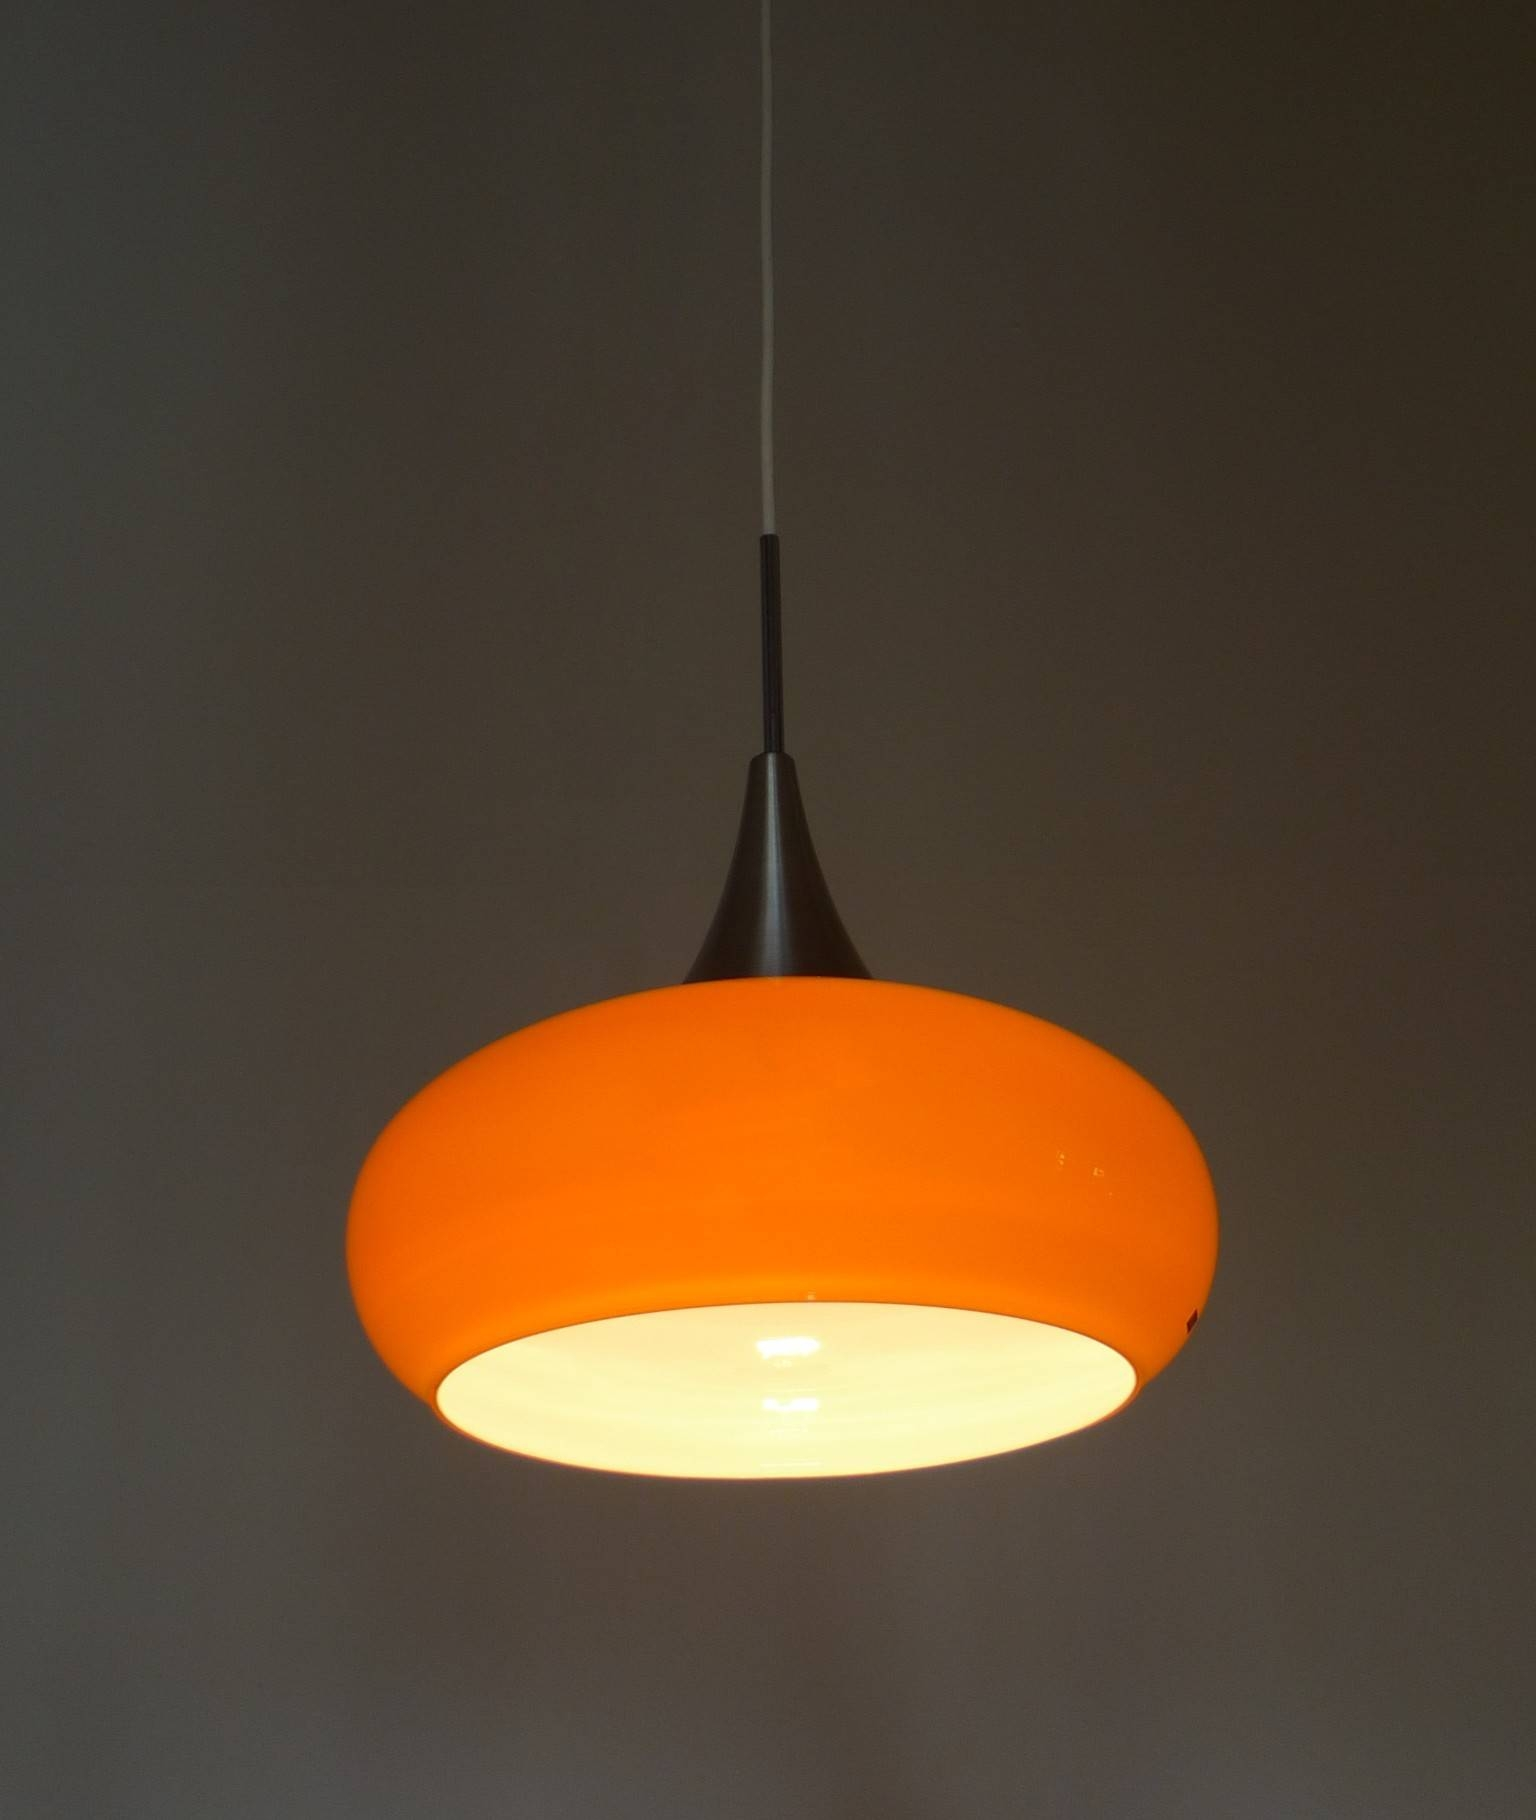 Orange Glass Pendant Light From Doria, Germany – 1960S – Design Market Throughout 1960S Pendant Lights (View 2 of 15)